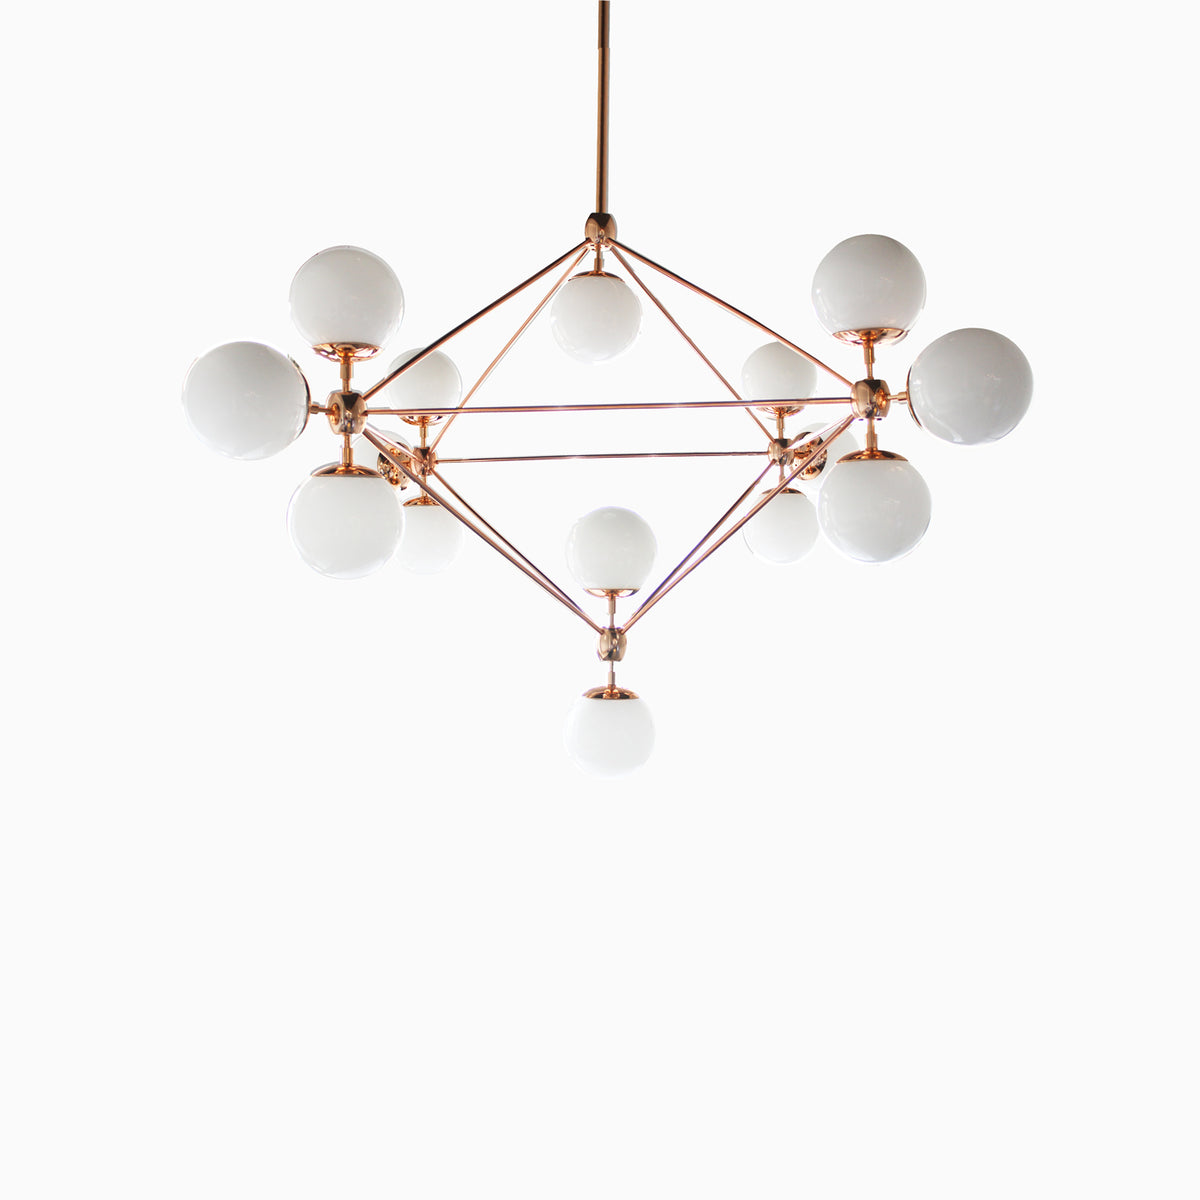 15 Blob Chandeliers - objects of interest